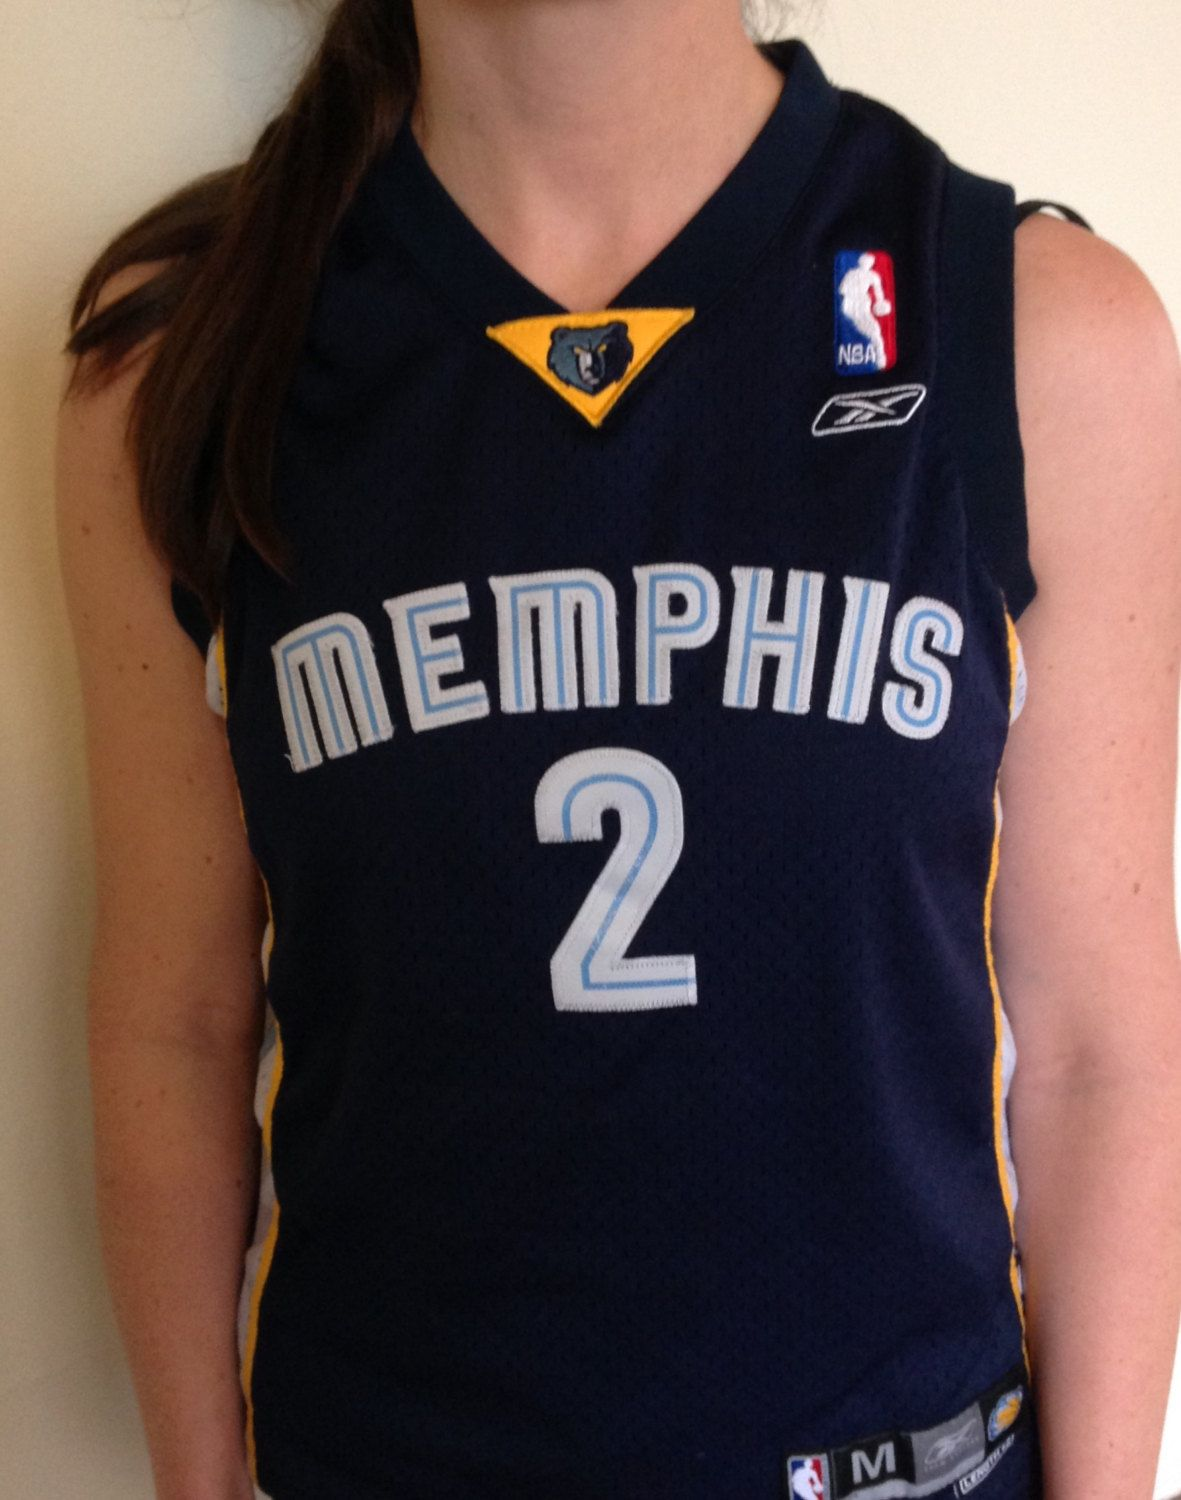 0b59dbfed Ladies NBA Stitched Jason Williams Memphis Grizzlies Basketball Jersey By  Reebok Extra Small by BucketBusterVintage on Etsy